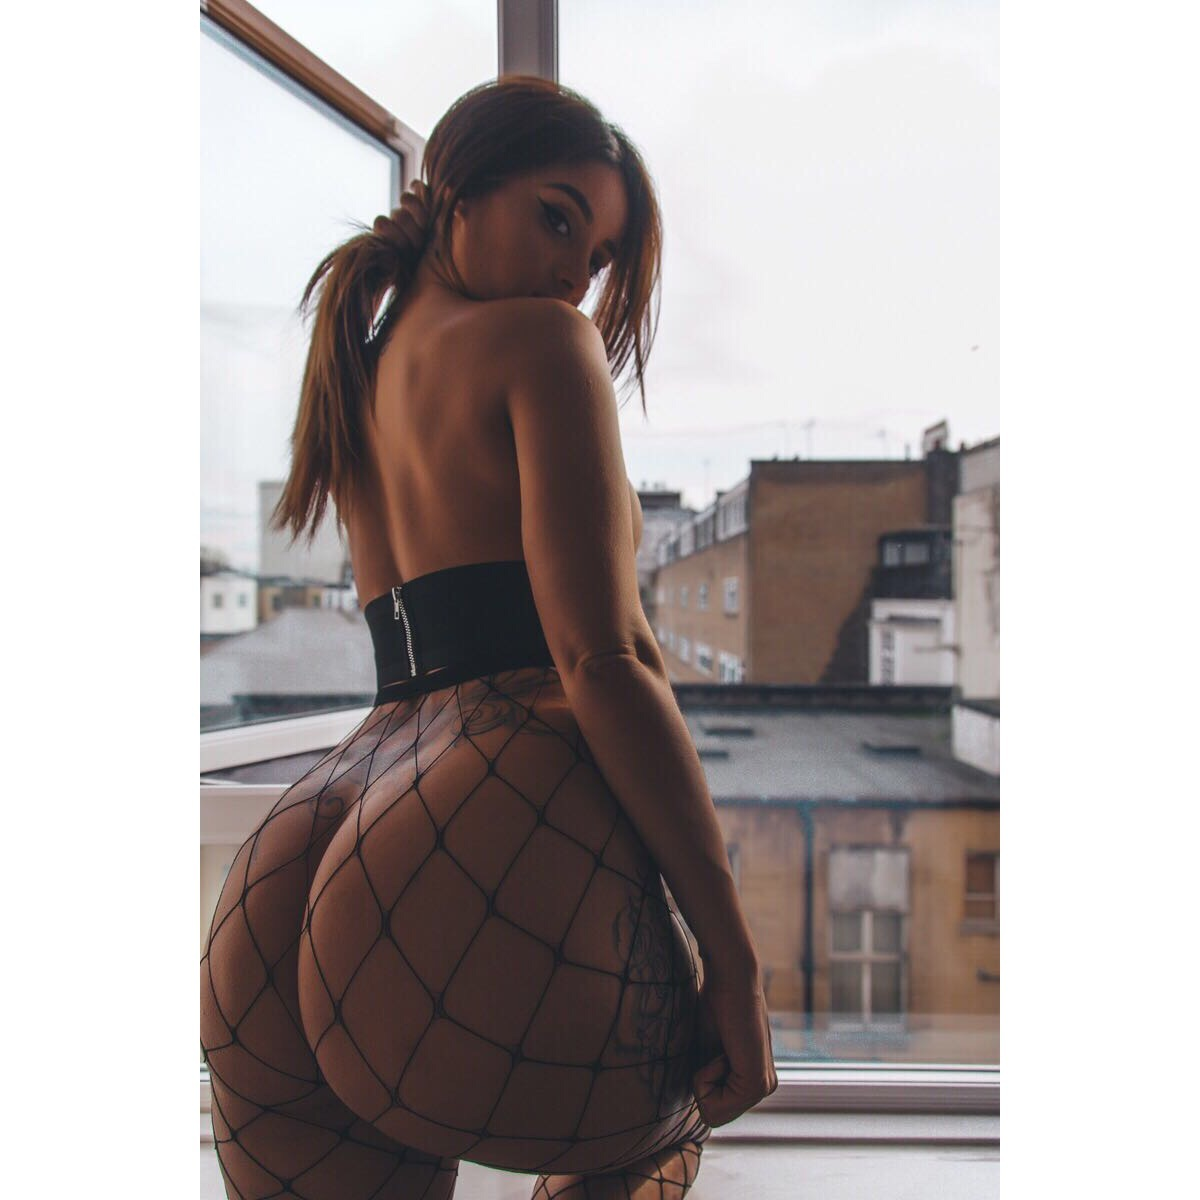 Preeti slim figure with a big round arse looking over her shouder wearing fishnet leggings and a tight top